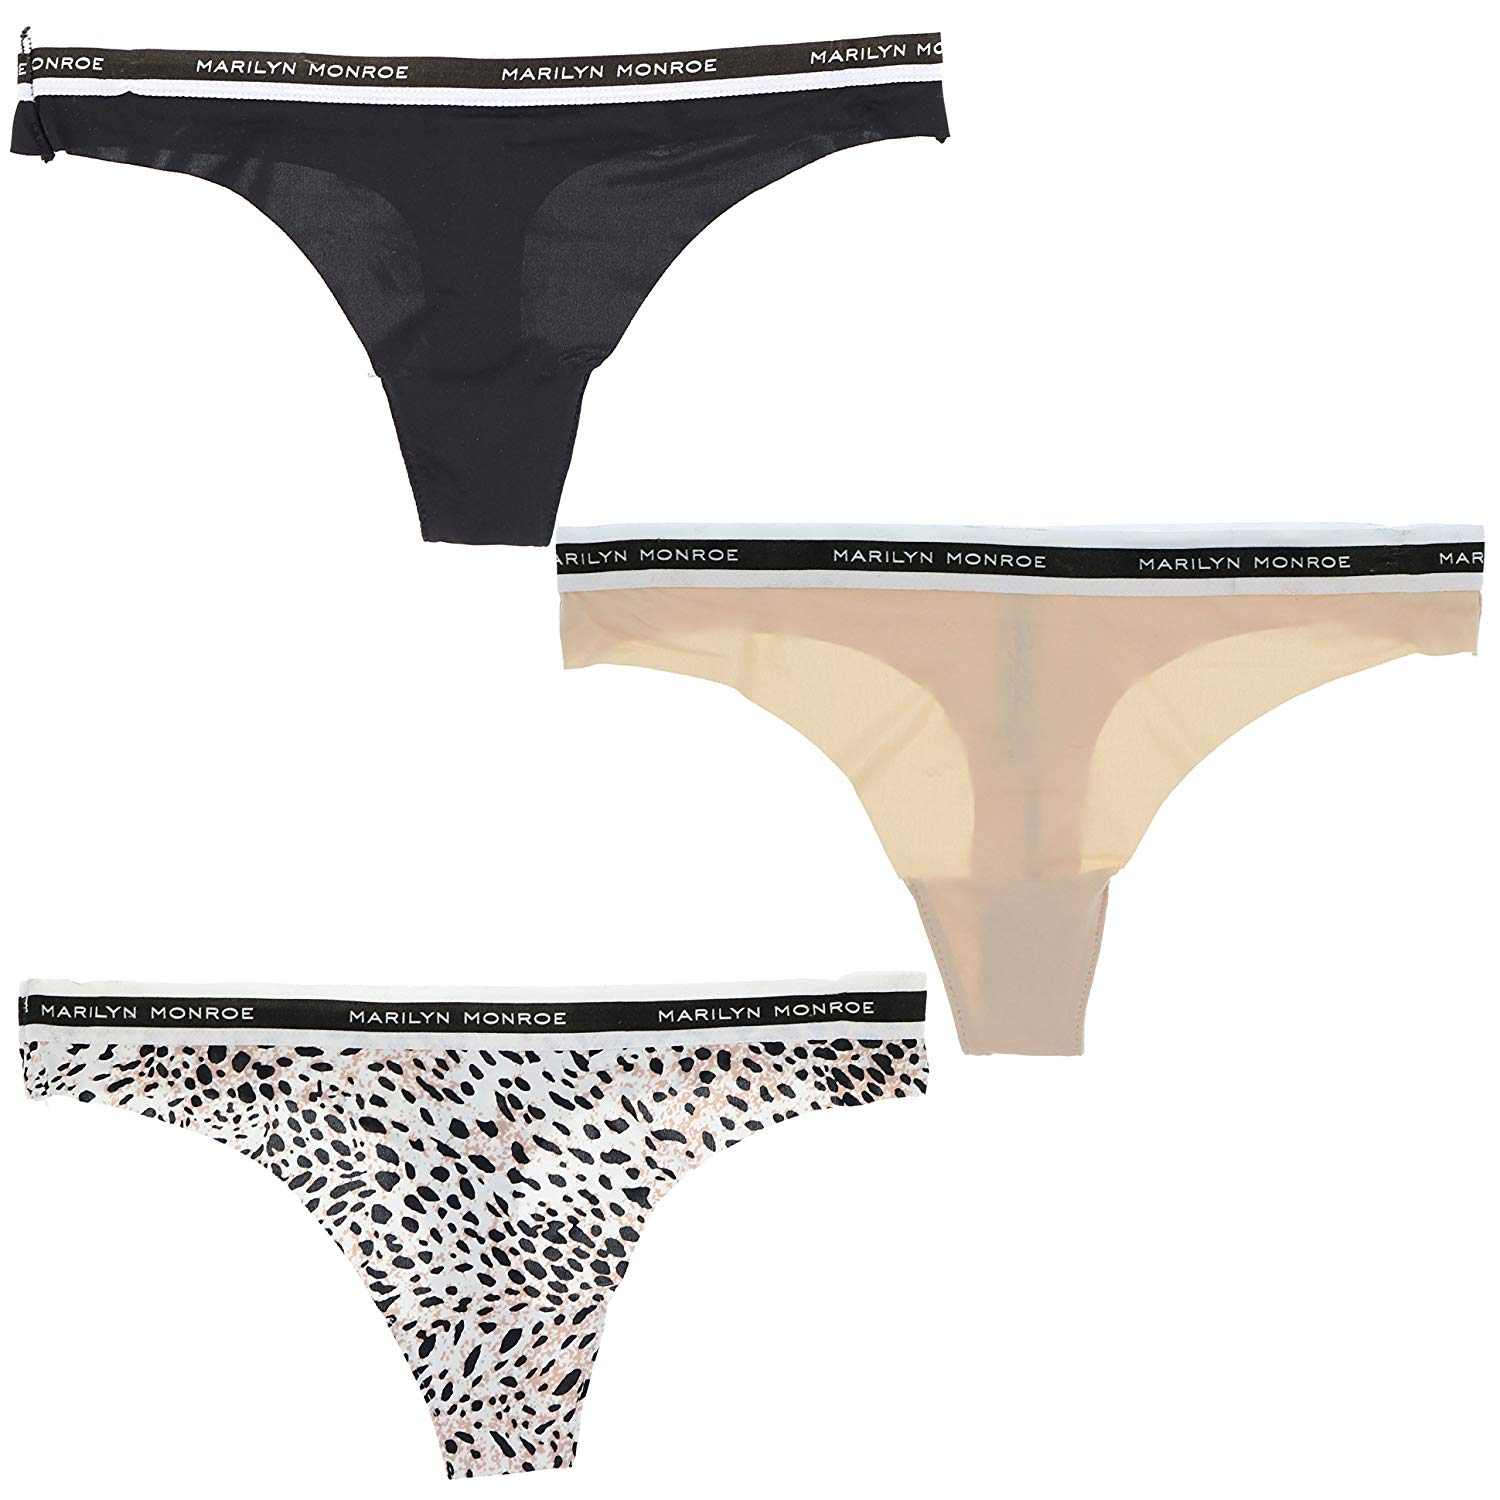 13f7aff9216d Get Quotations · Marilyn Monroe Intimates Womens Seamless Sporty Thong  Panties (3 Pr) (Small, Cheetah